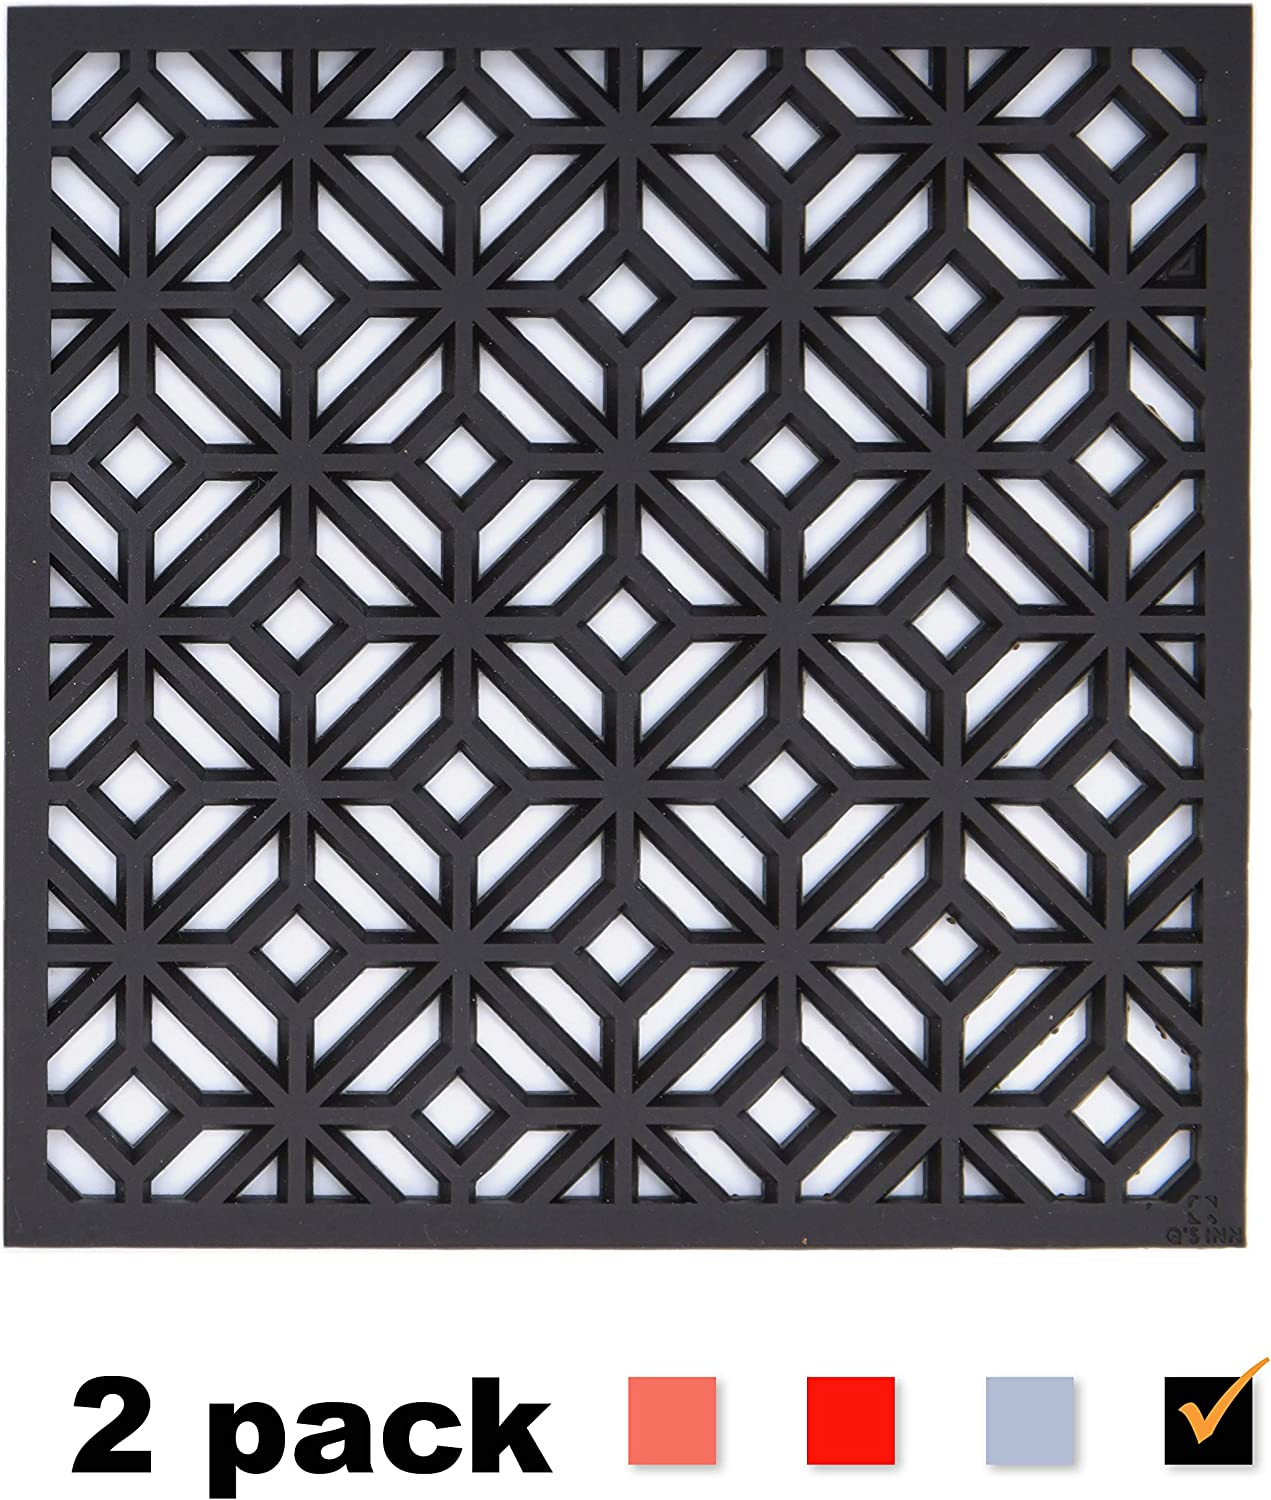 Silicone Trivet for hot Dishes Pots and Pans our Decorative Table Mats can be used as Pot Holders and Oven Mitts Coasters Jar Openers and are Microwave safe. Set of 2 Potholders by Q's INN.